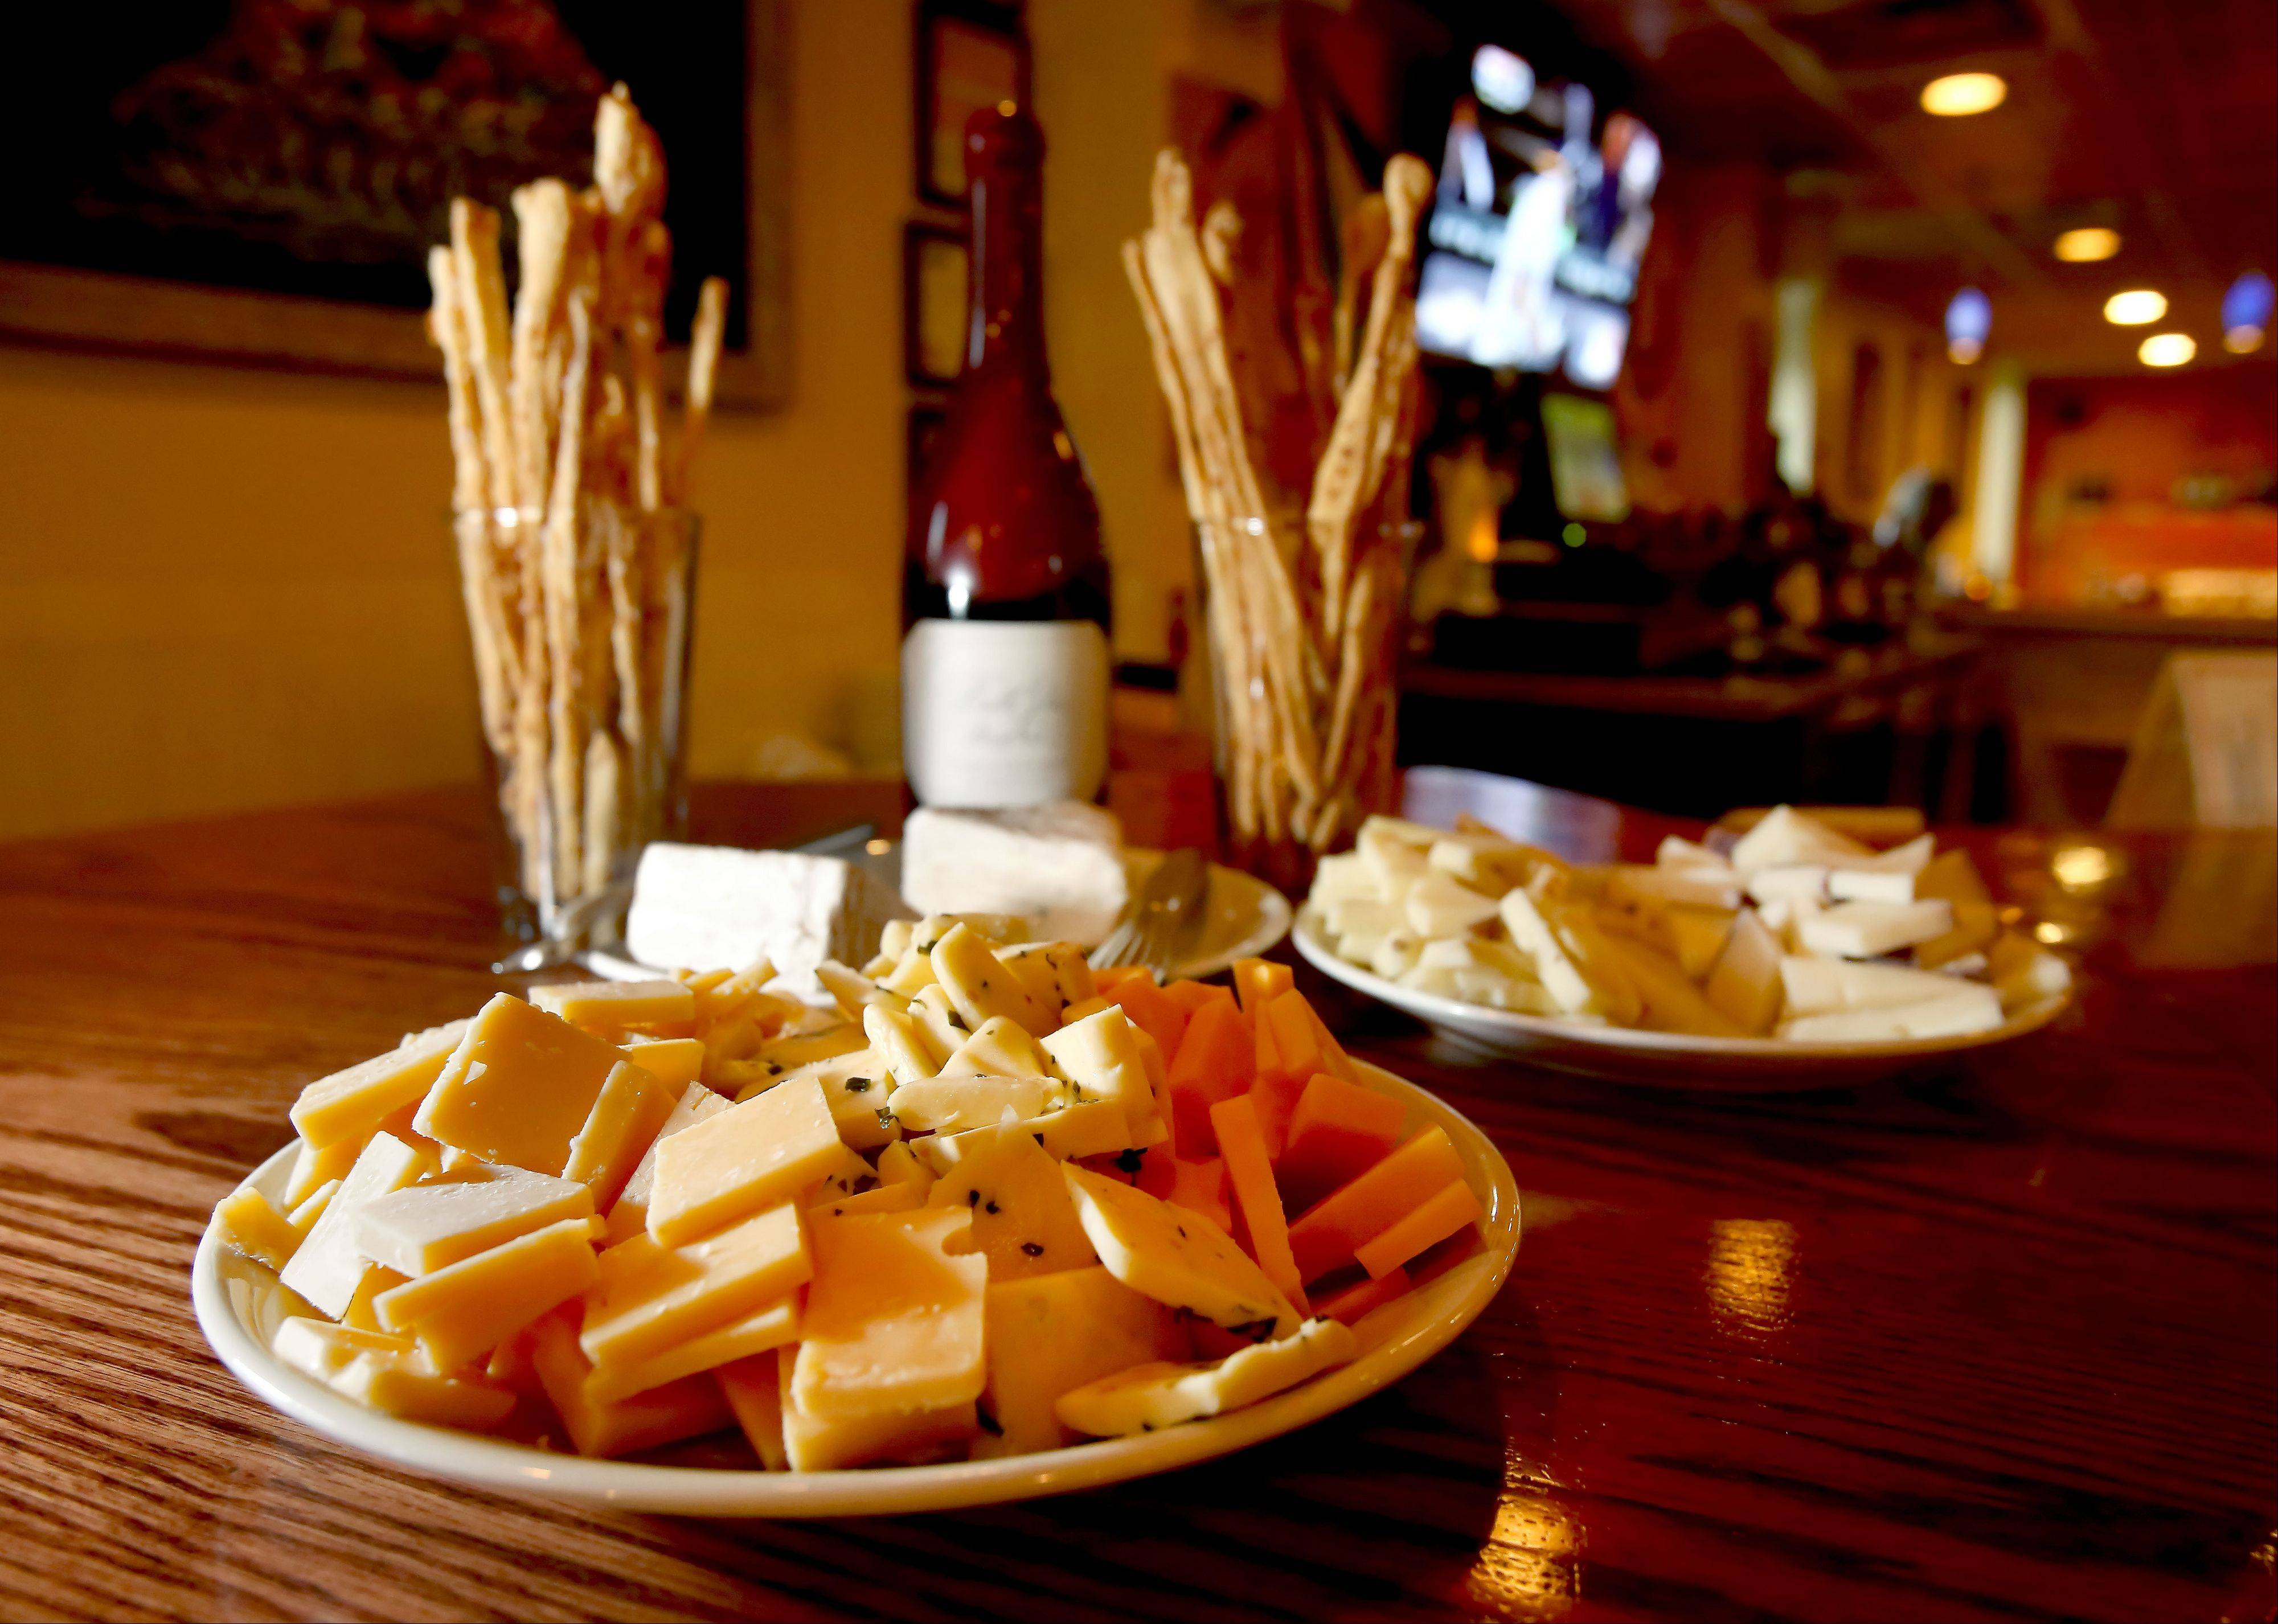 A selection of cheeses can be enjoyed with a glass of wine or craft beer at Wine With Me in Itasca.